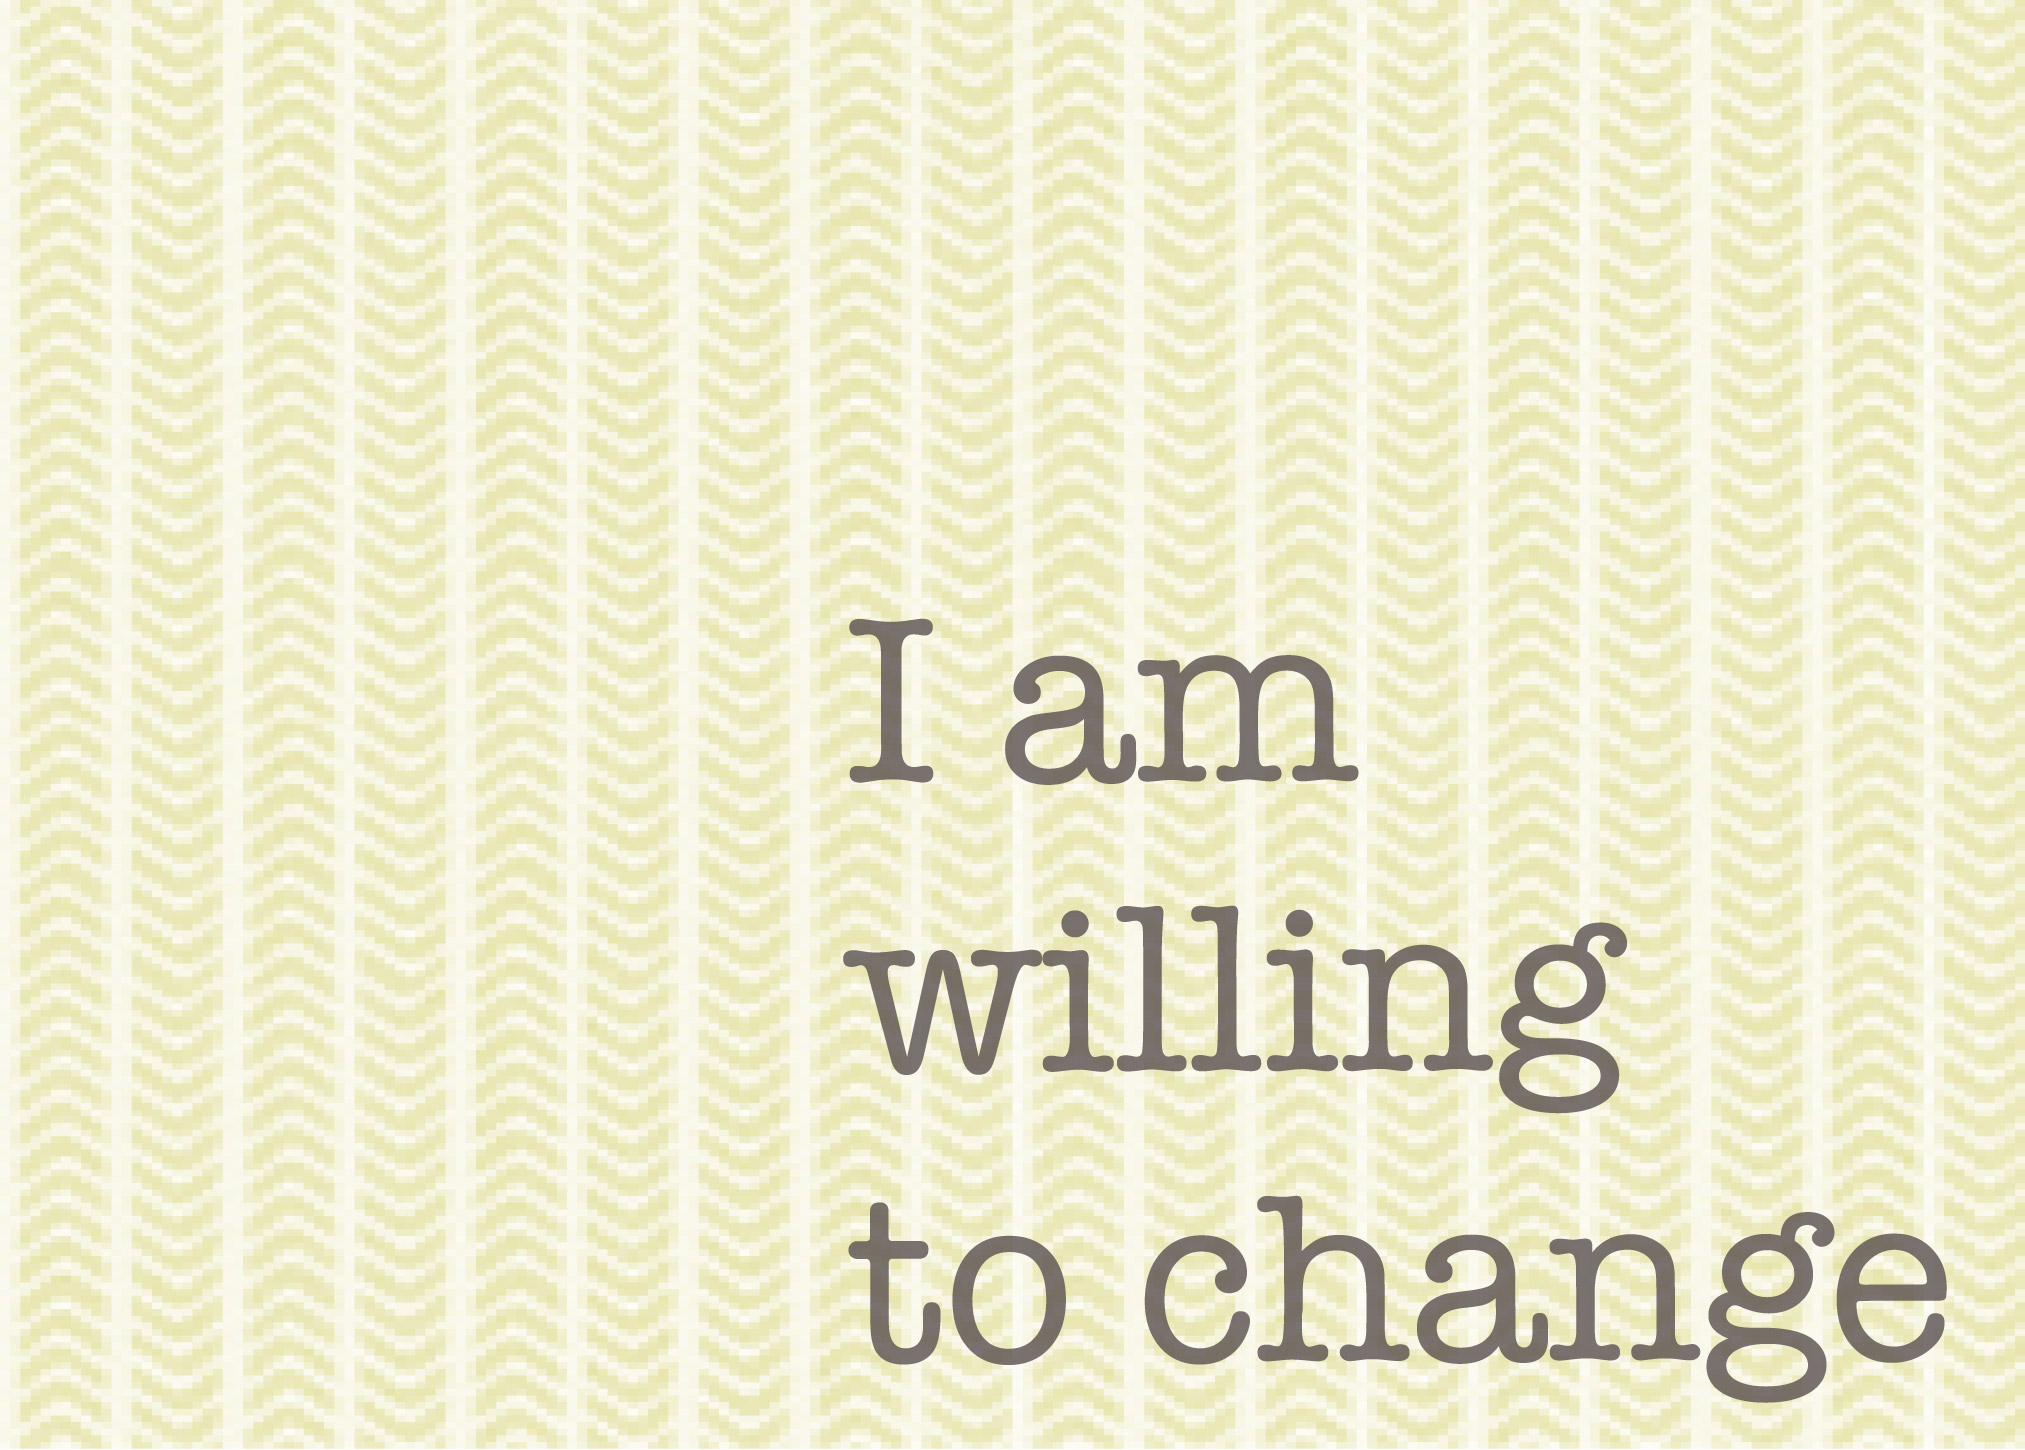 I am willing to change affirmation